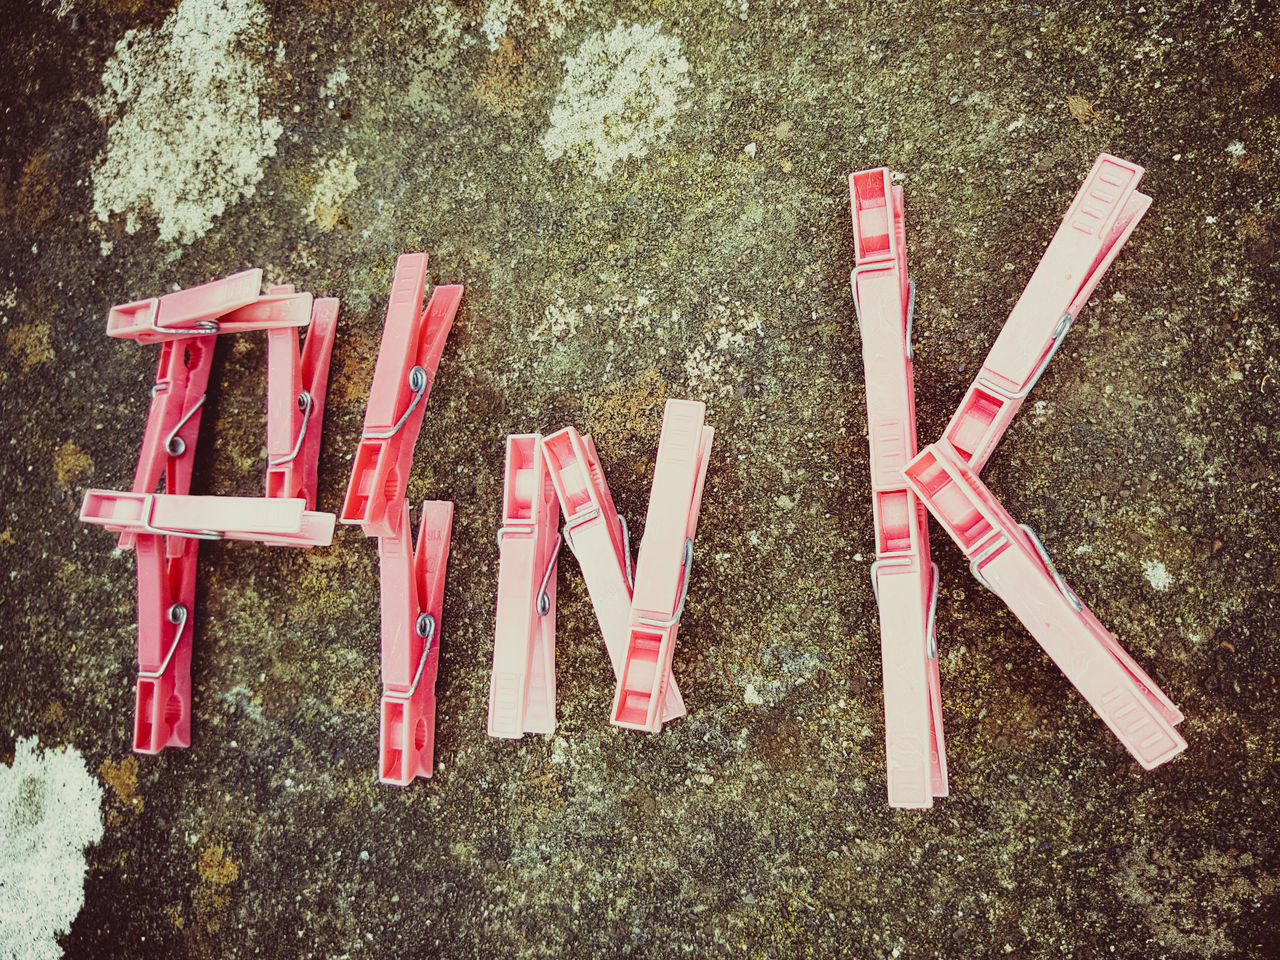 The word Pink spelt out with bright Pink clothes pegs on a stone background. Text No People Outdoors Day Affection Housework Laundry Pegs Romantic Pictures Samsung Galaxy S7 Edge Communication Text Smartphonephotography My Smartphone Life Artphotography EyeEmNewHere Art Photography Pink Color Colour Image Words In Picture Spelling Artphoto Millennial Pink